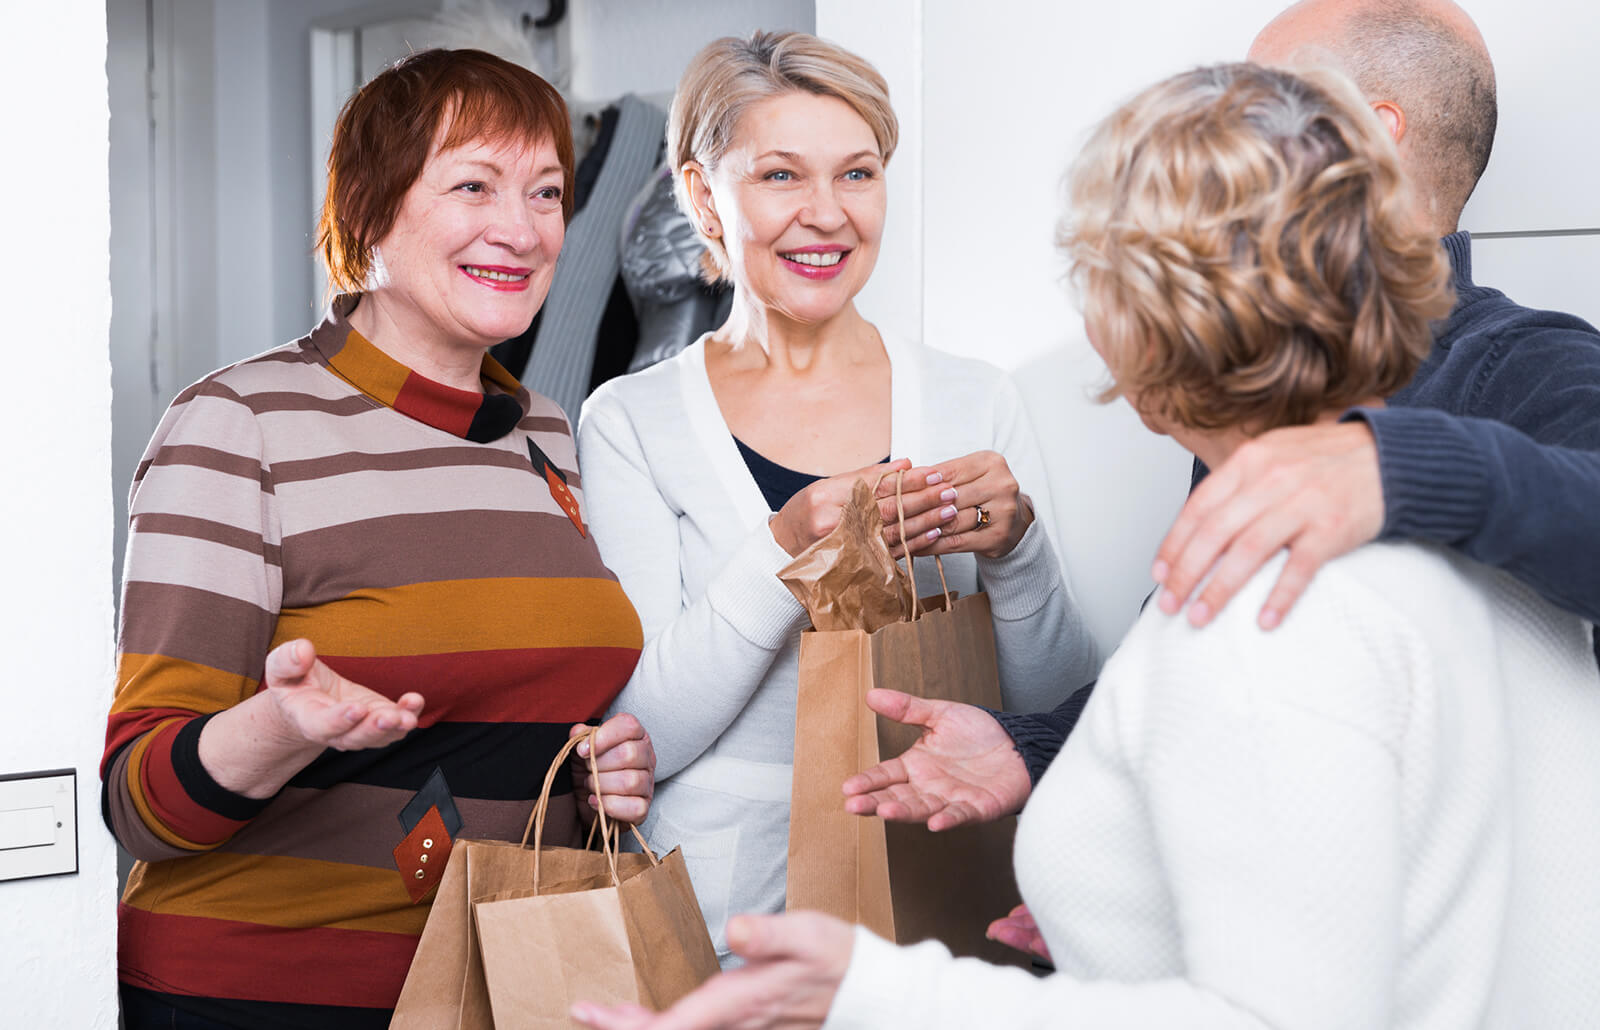 What To Put In Goody Bags For Adults Lovetoknow